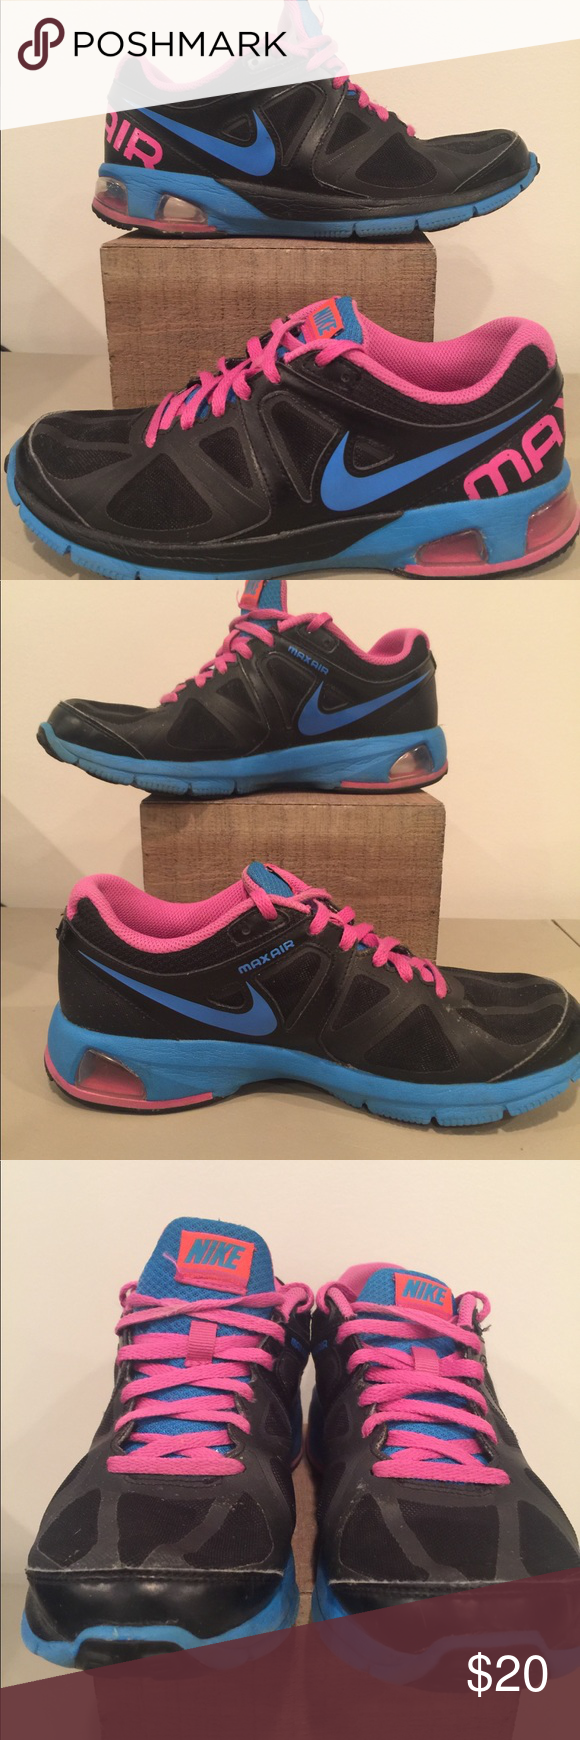 san francisco acea2 2c5ff Nike Air Max Run Lite 4 Womens Running Shoes Preowned but not abused. No  holes, no rips. No box. Item shown is the item you will receive.